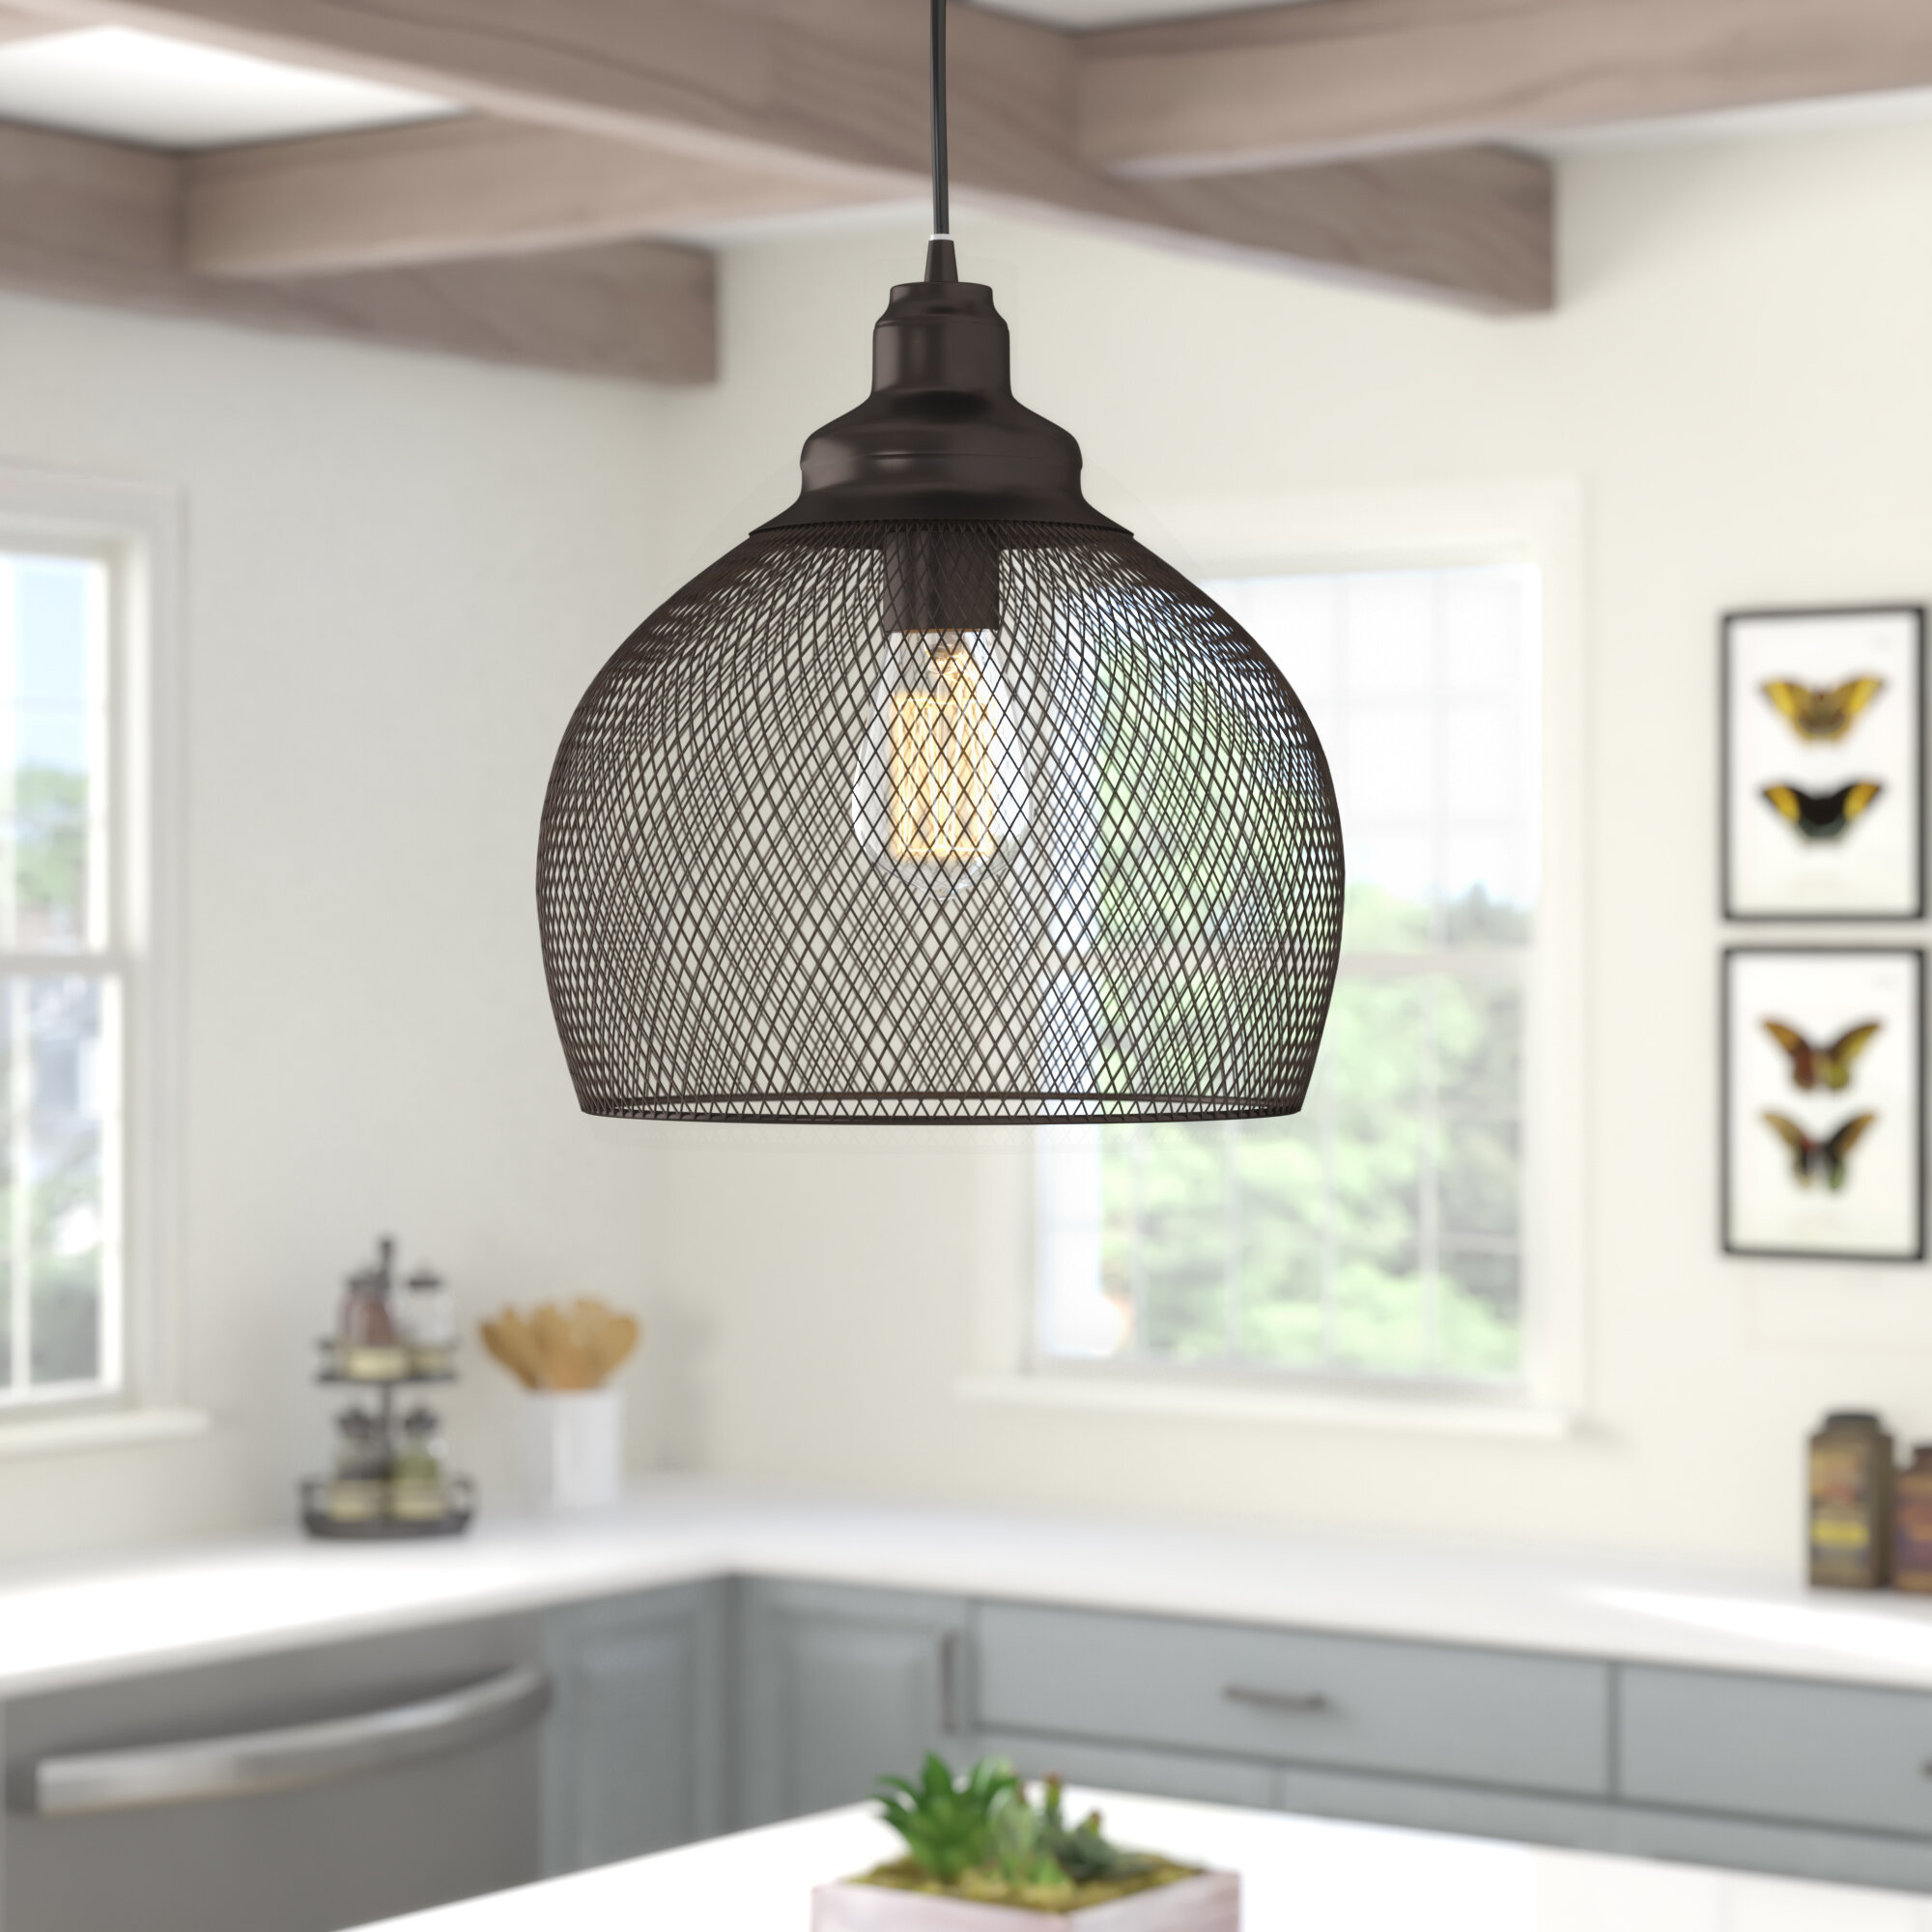 Ryant 1-Light Single Dome Pendant in 1-Light Single Dome Pendants (Image 25 of 30)